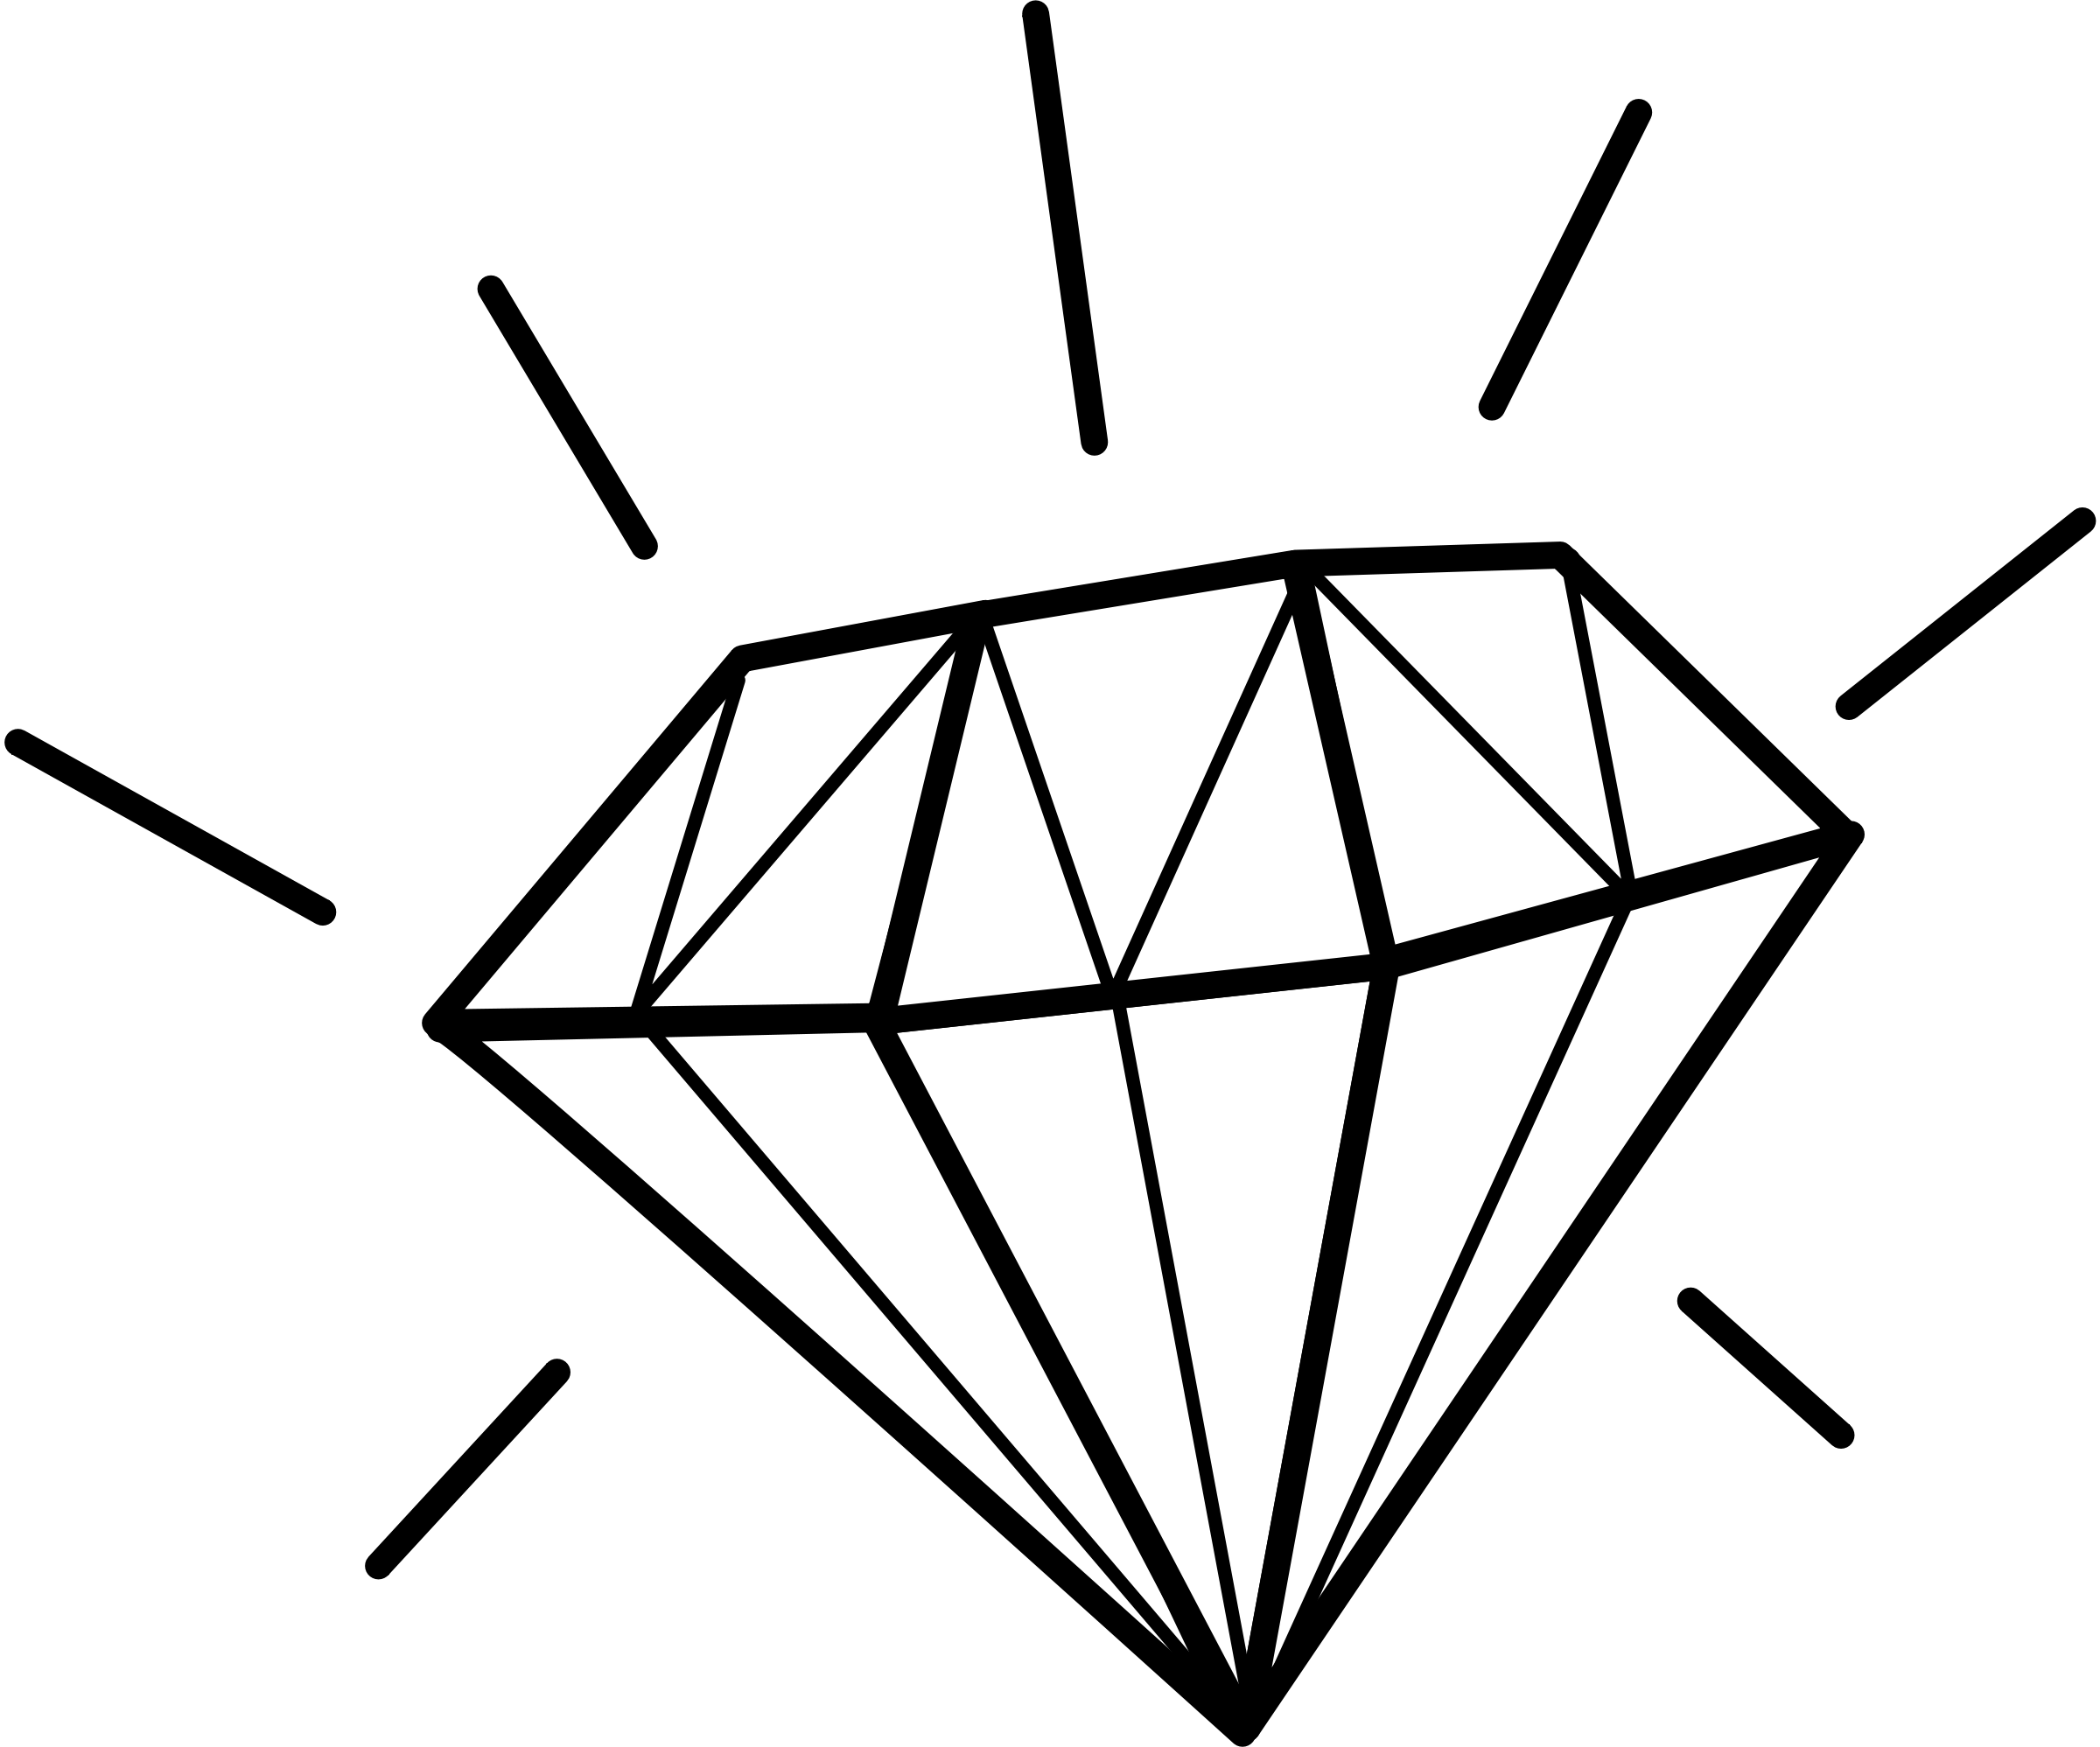 Diamonds clipart daimond.